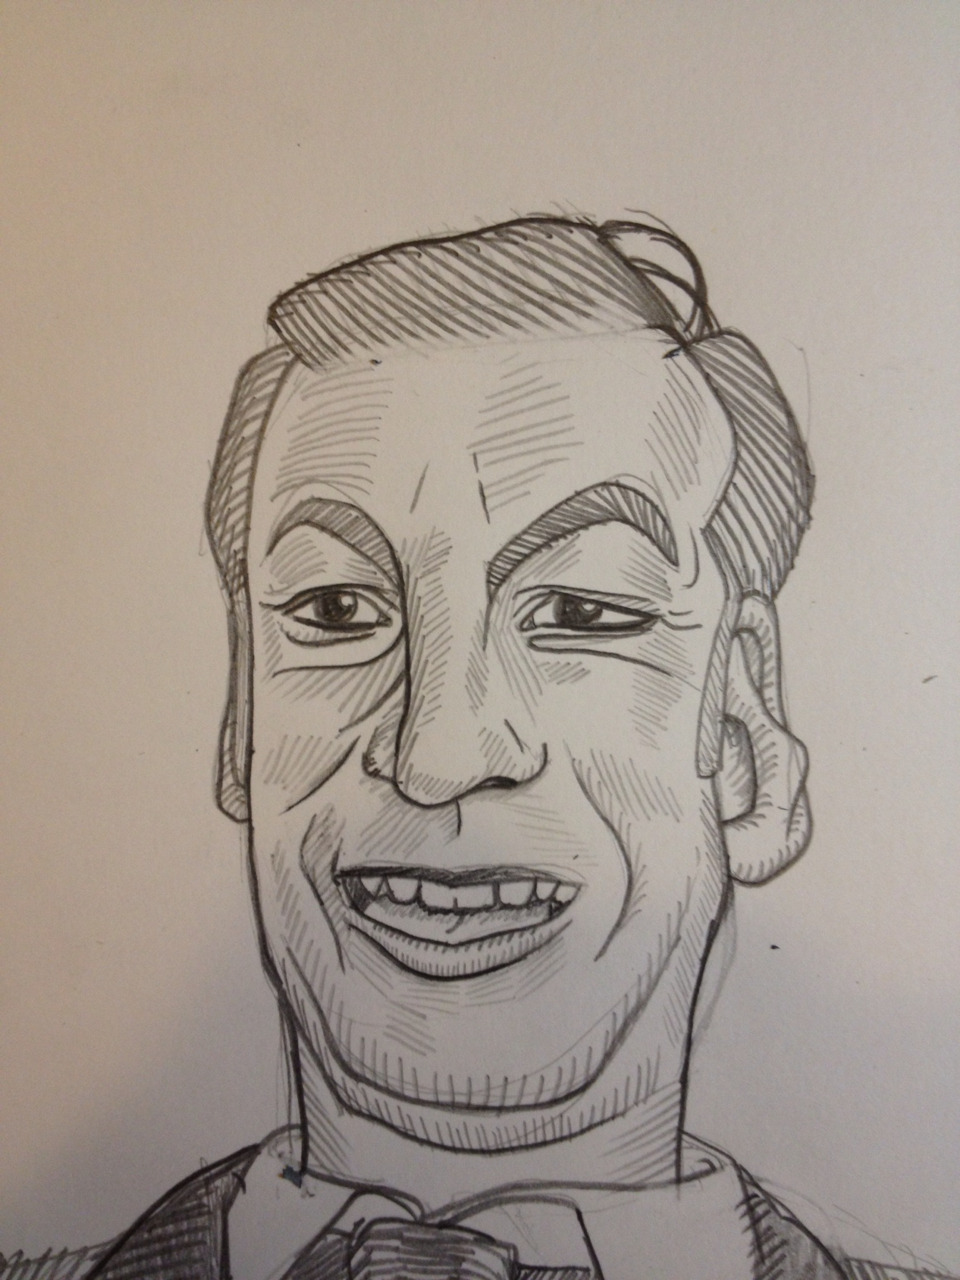 More Bob Odenkirk